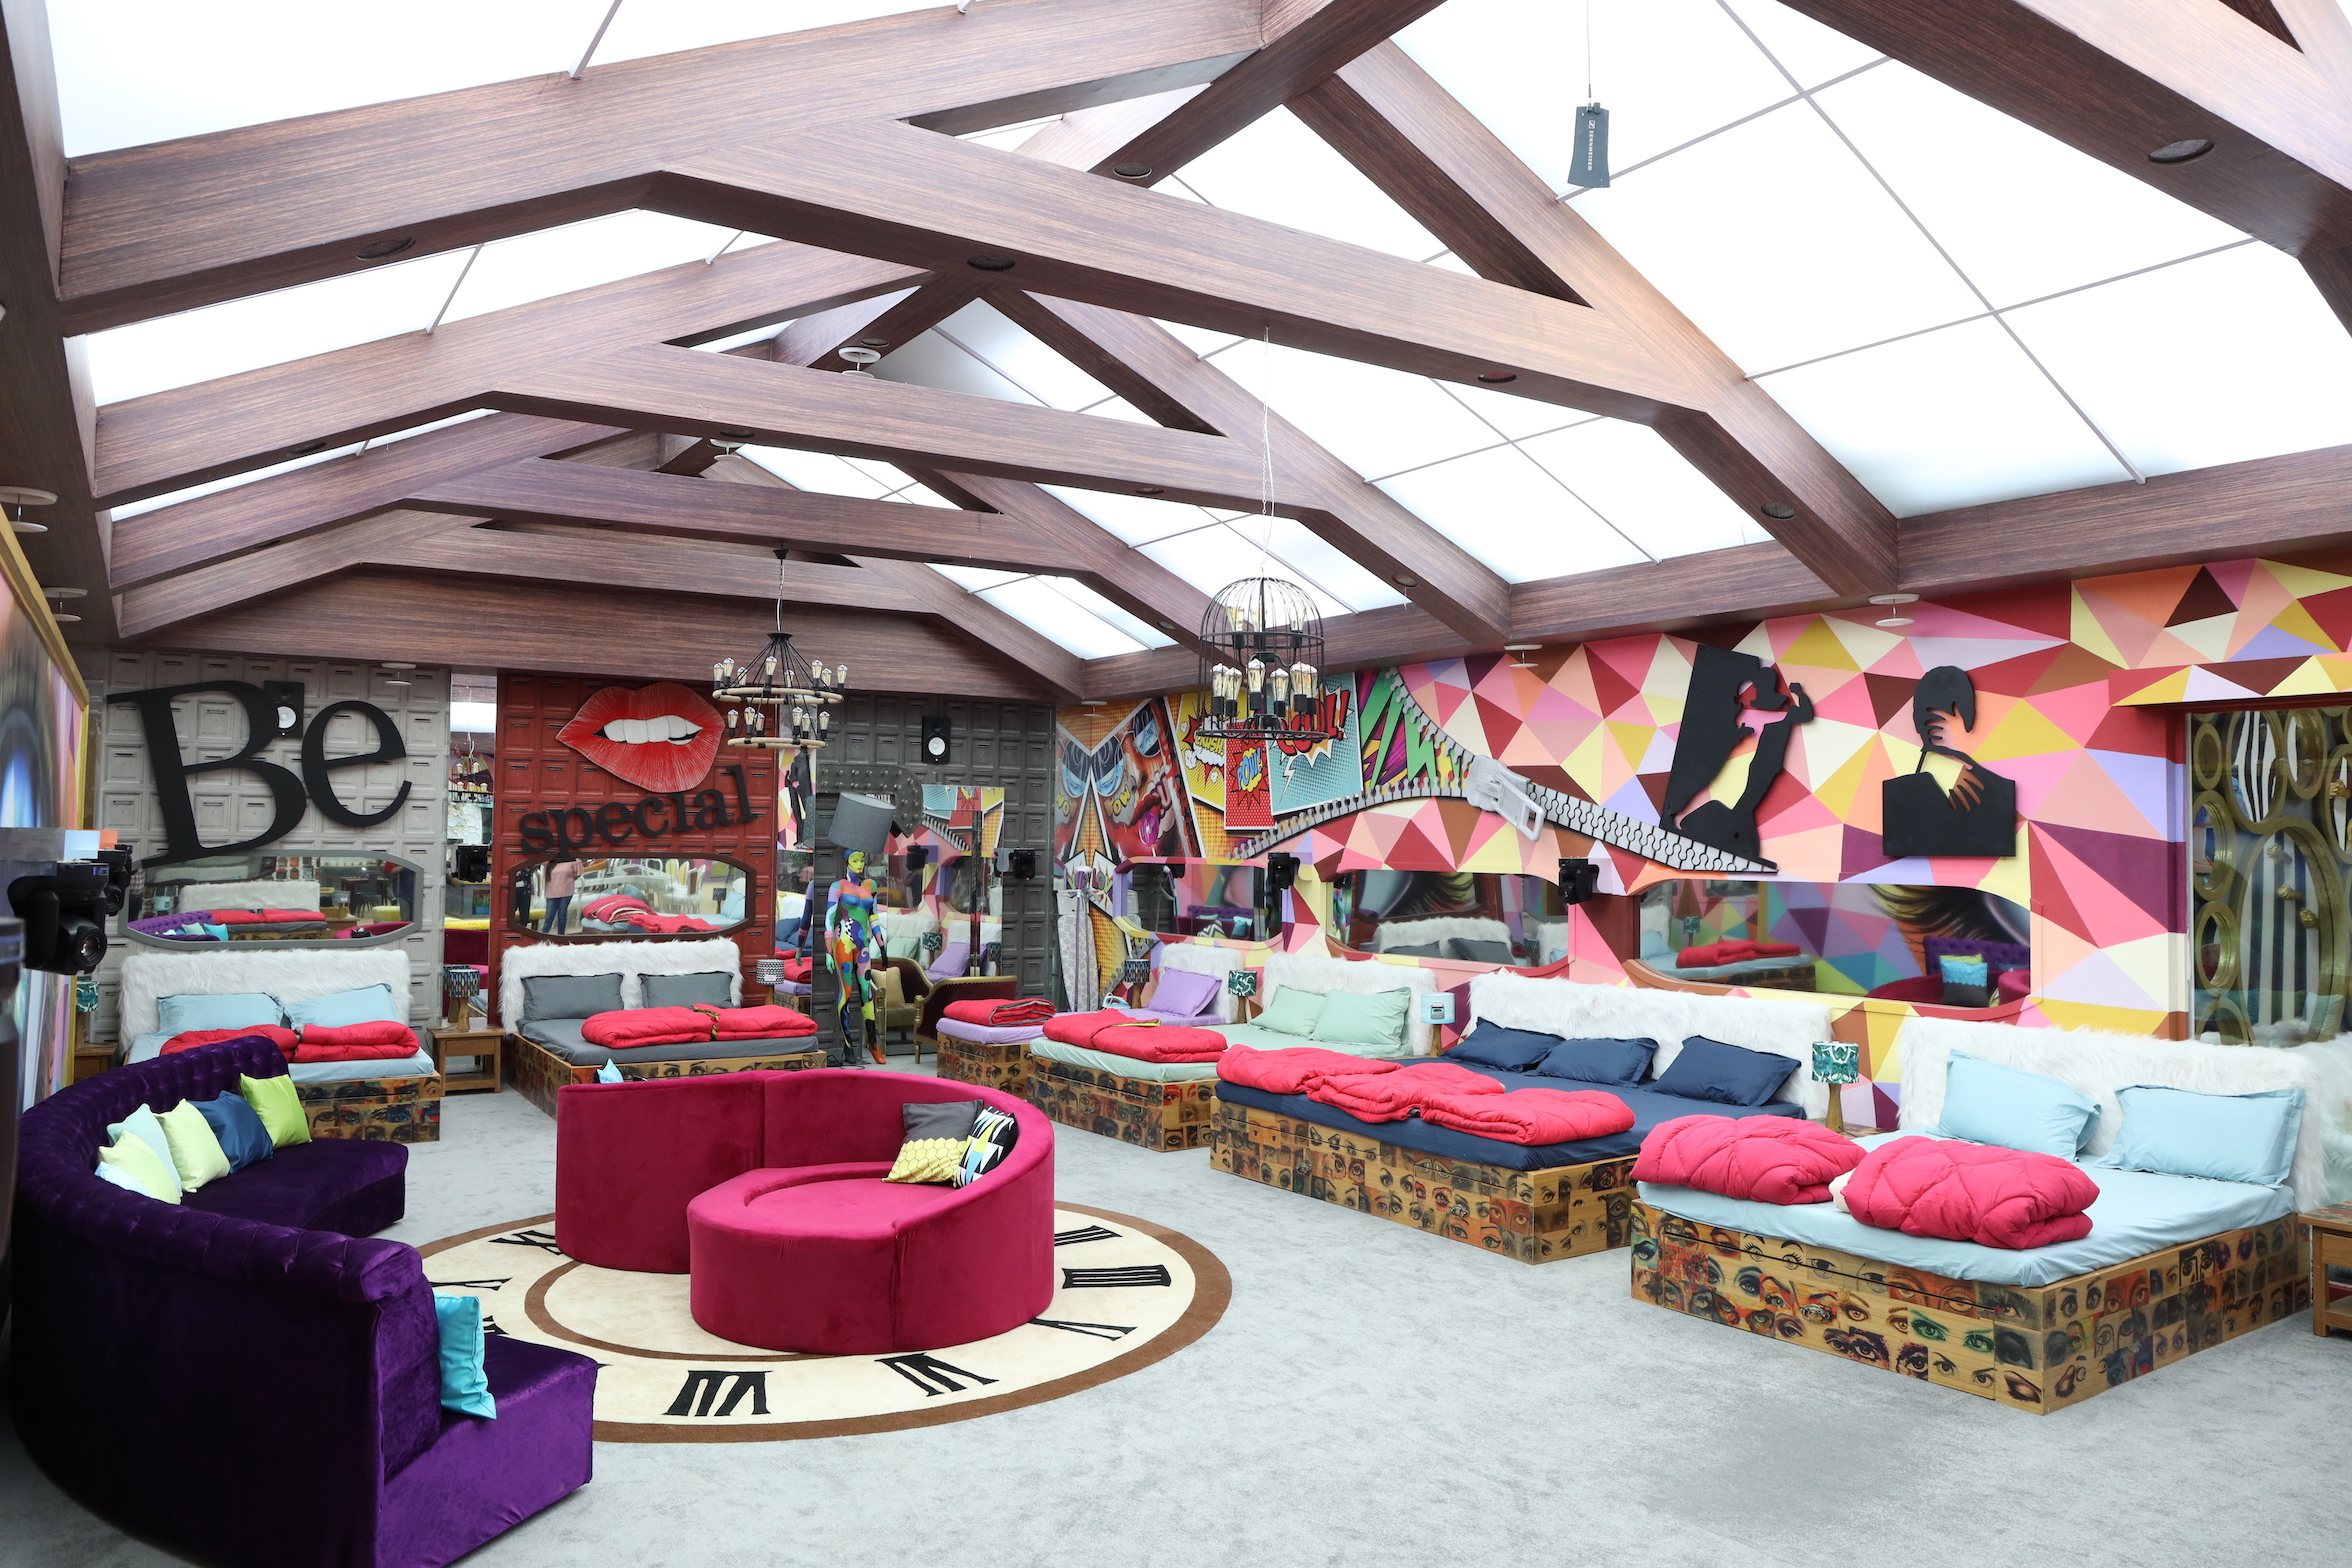 In Pics Bigg Boss Season 13 House Is A Quirky Museum